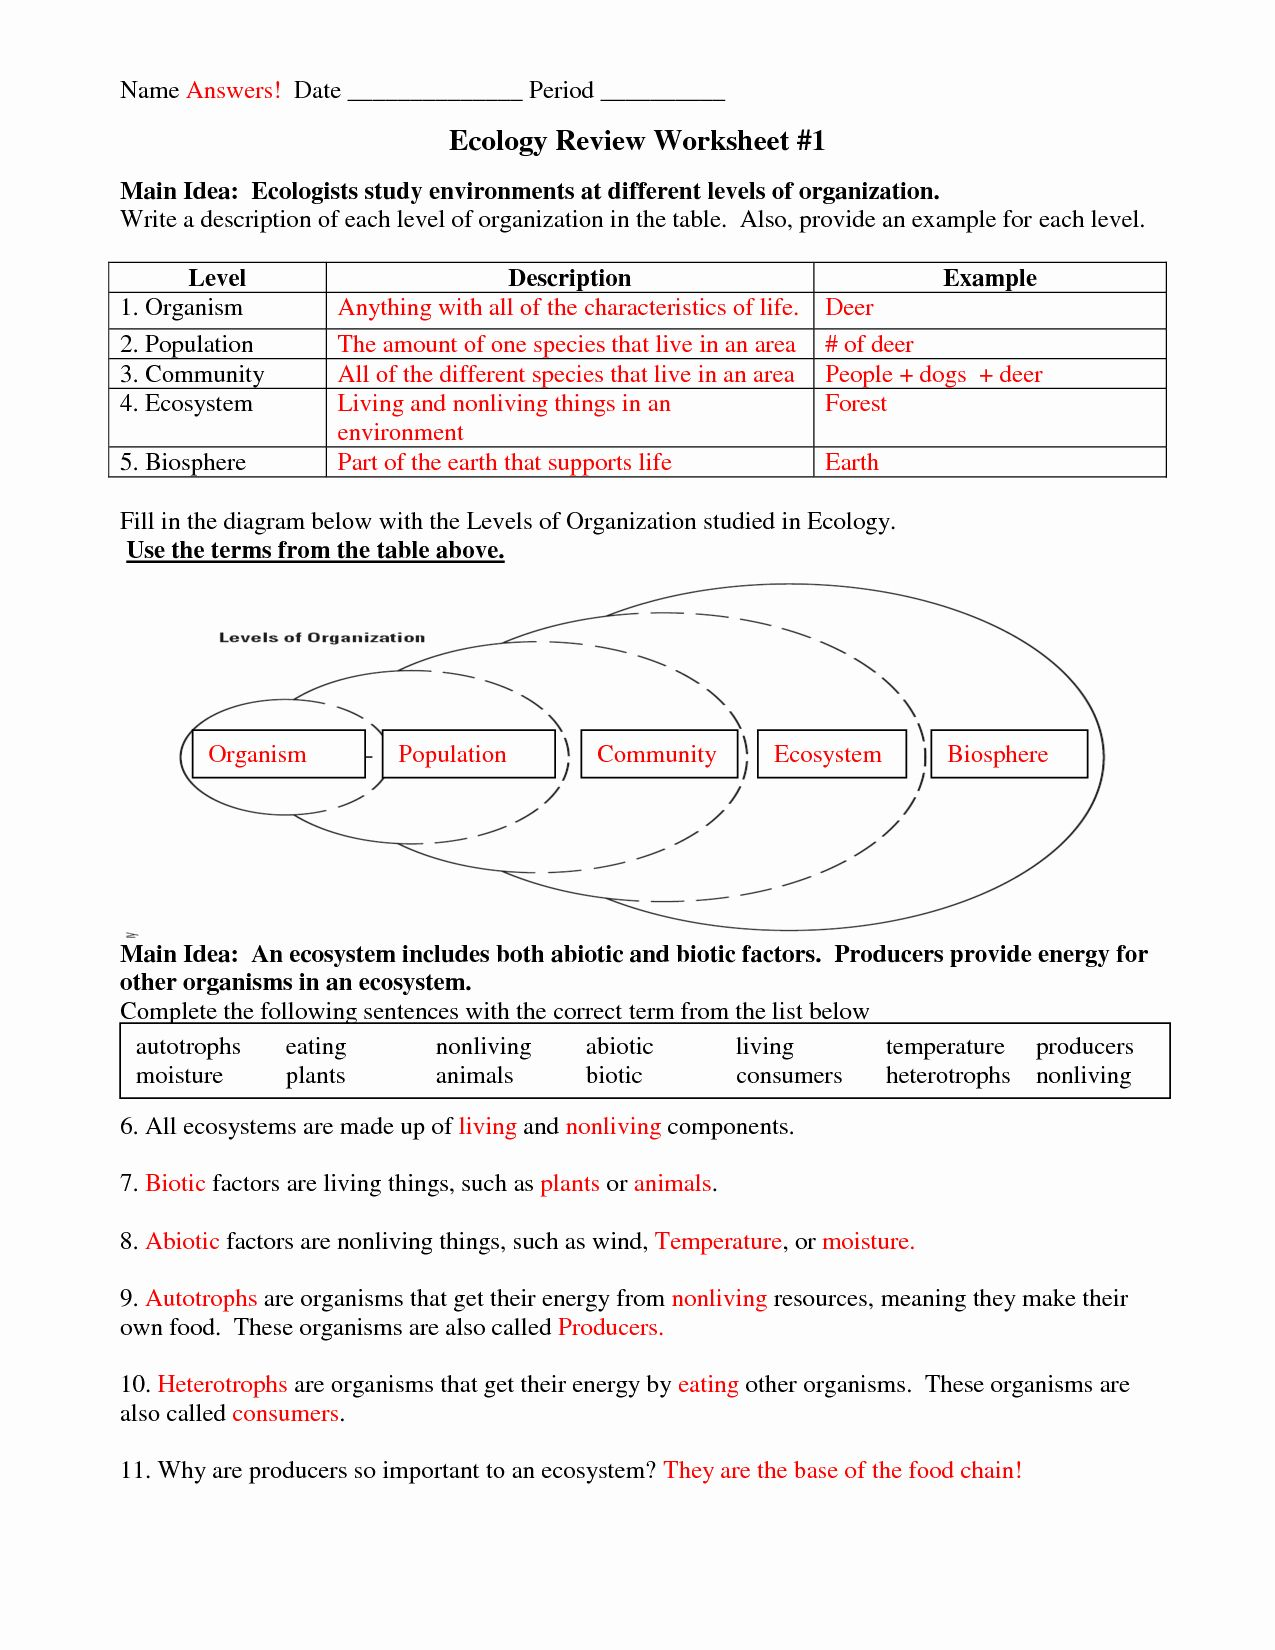 Getting Paid Reinforcement Worksheet Answers